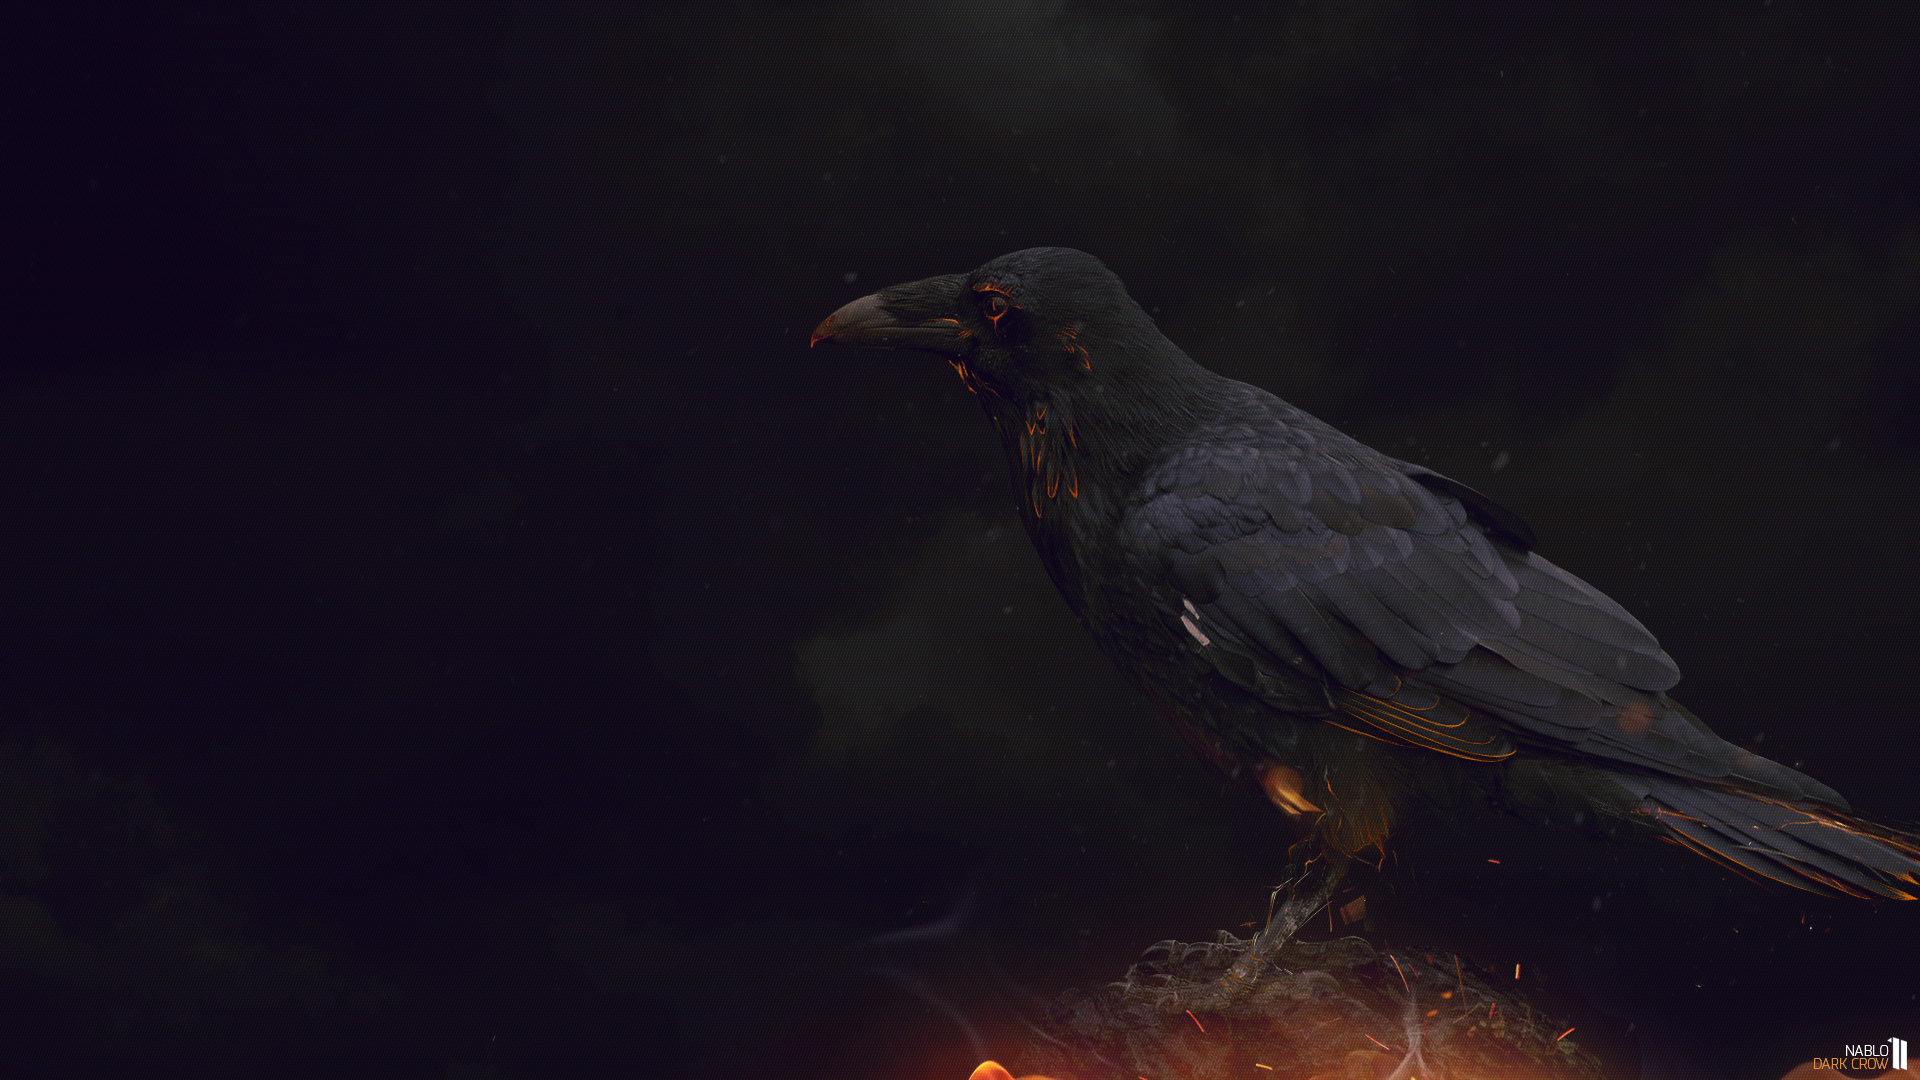 cool wallpaper of the crow - photo #35